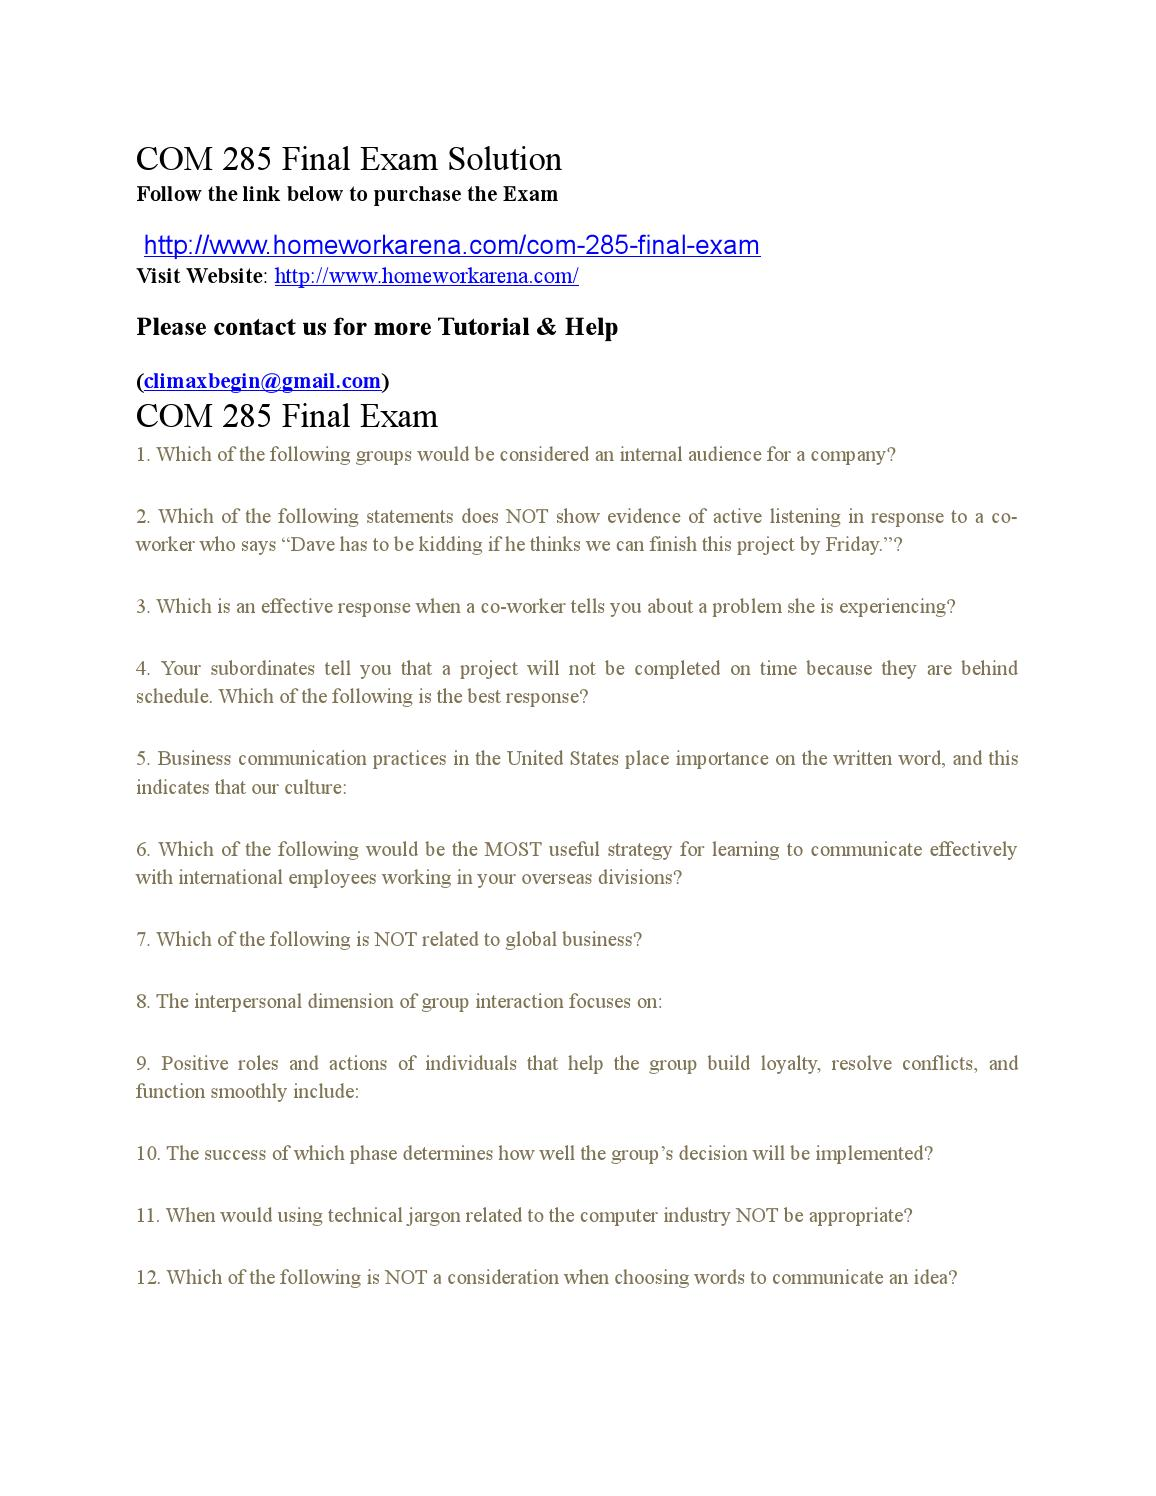 com 285 final exam b Quizlet provides health hs 285 activities,  hs 285 final exam ache fah hfma aupha american college of healthcare executives federation of american hospitals.